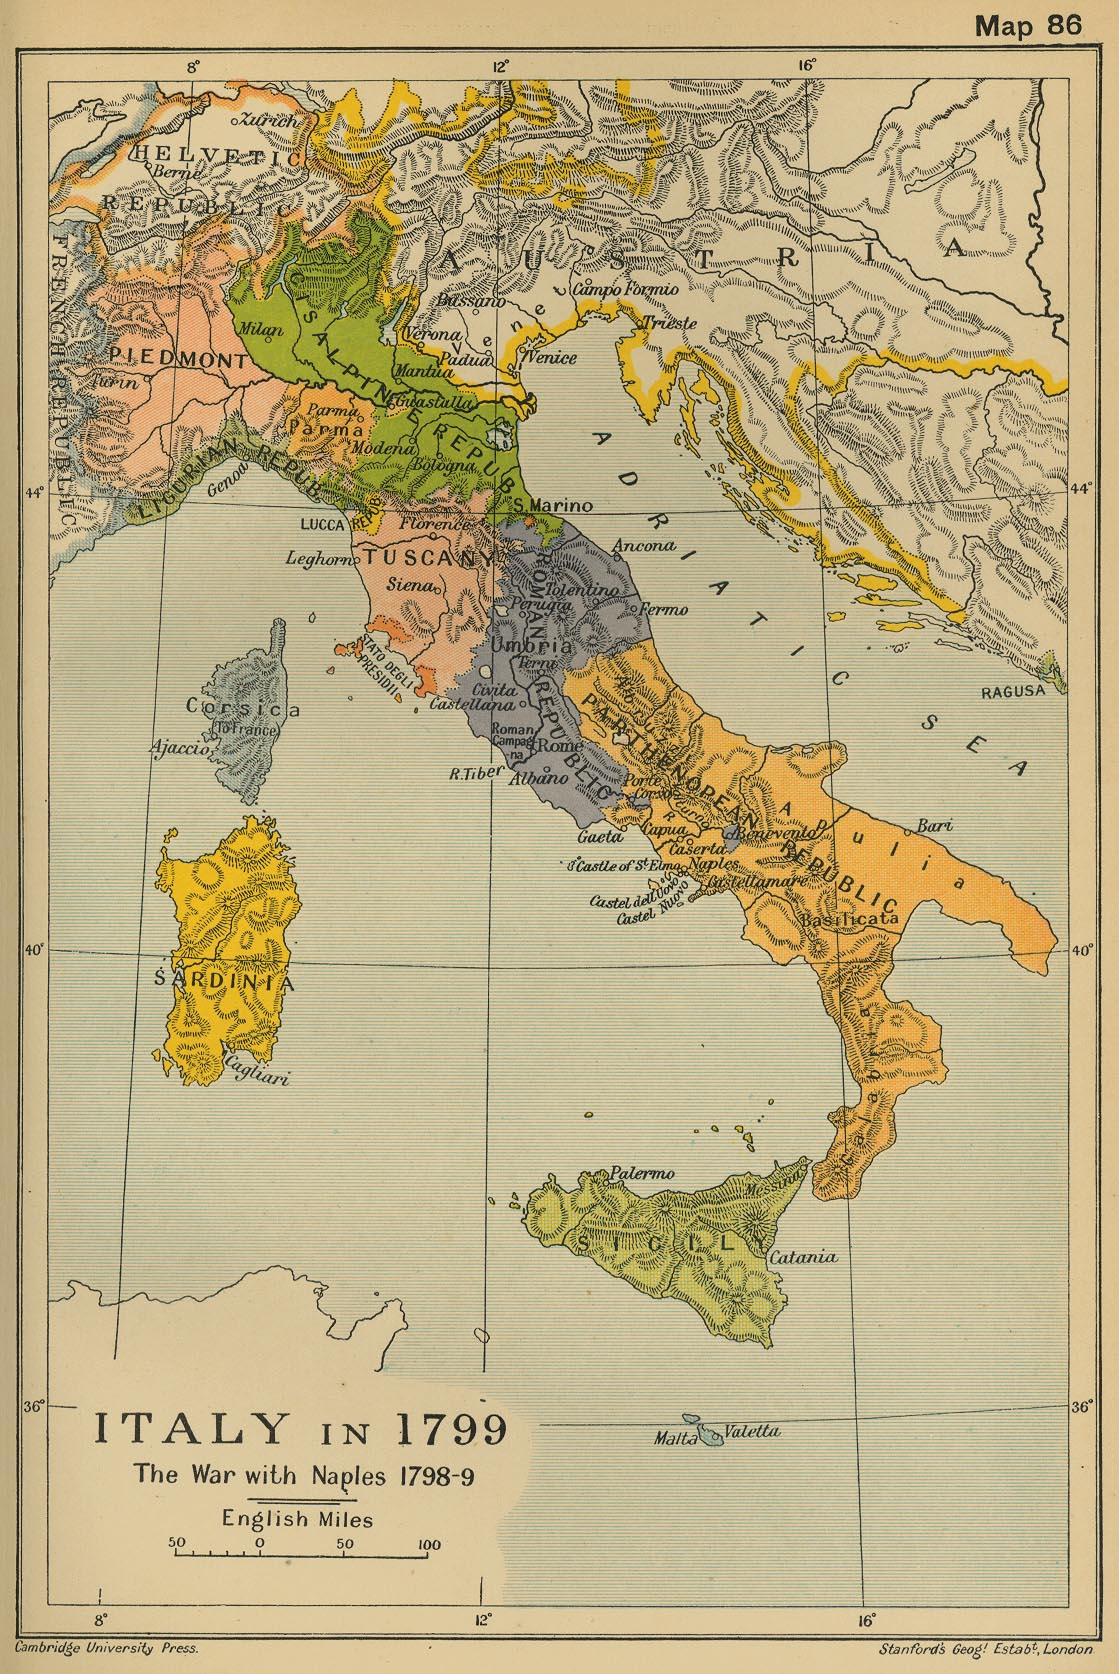 Map of Italy in 1799: The War with Naples